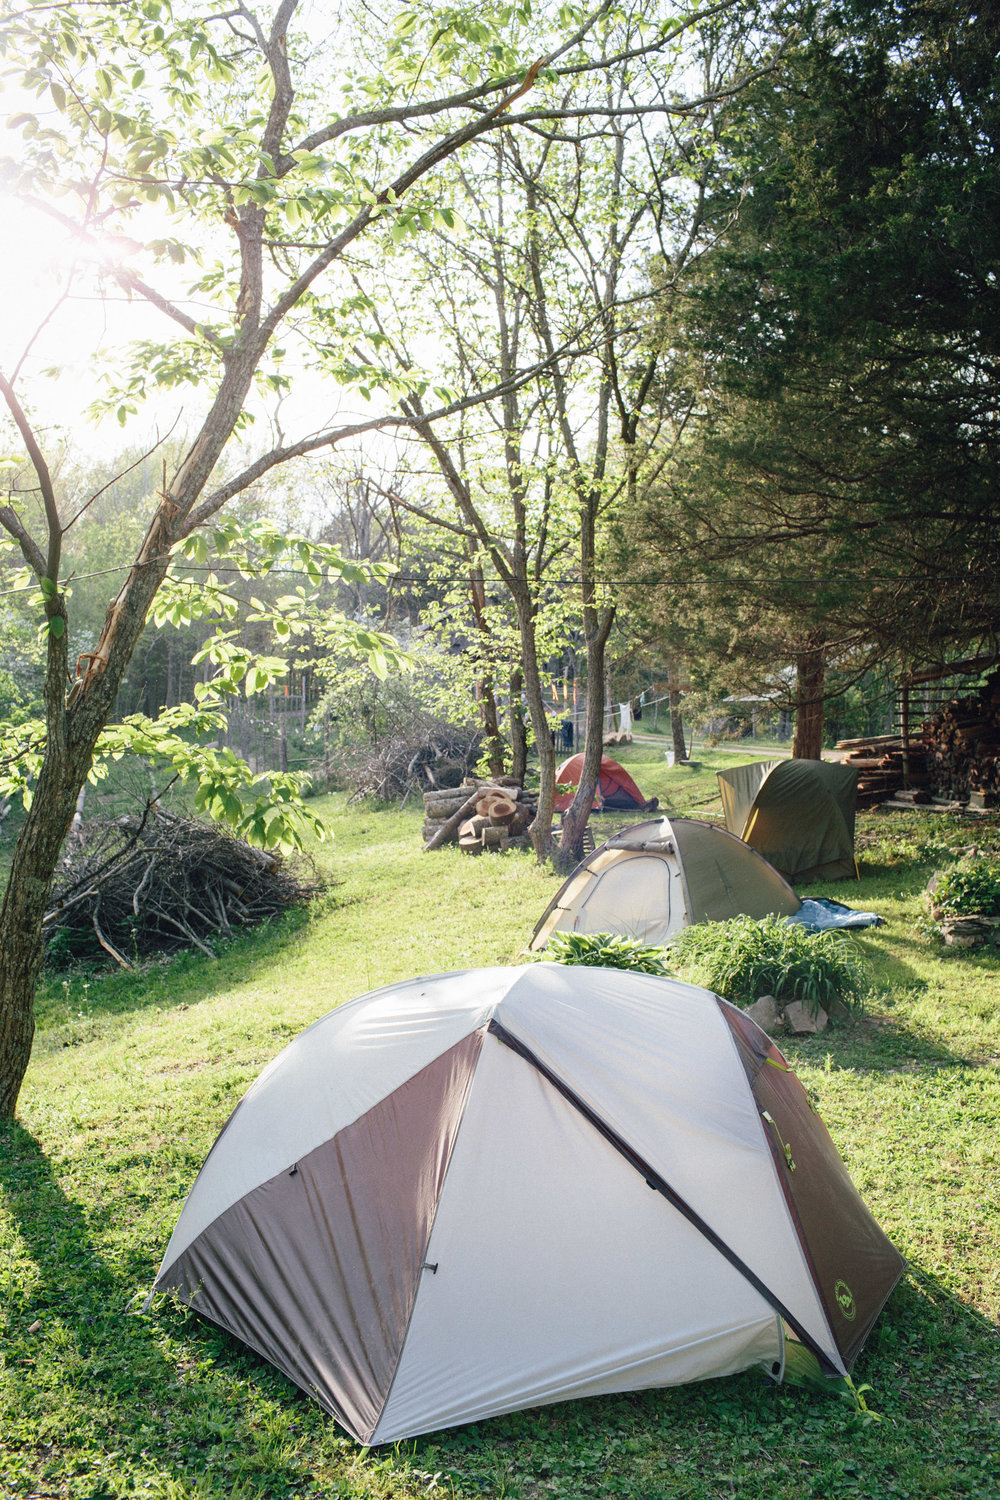 Accommodations consist of camping. This of course, includes occasional late night bon fires.